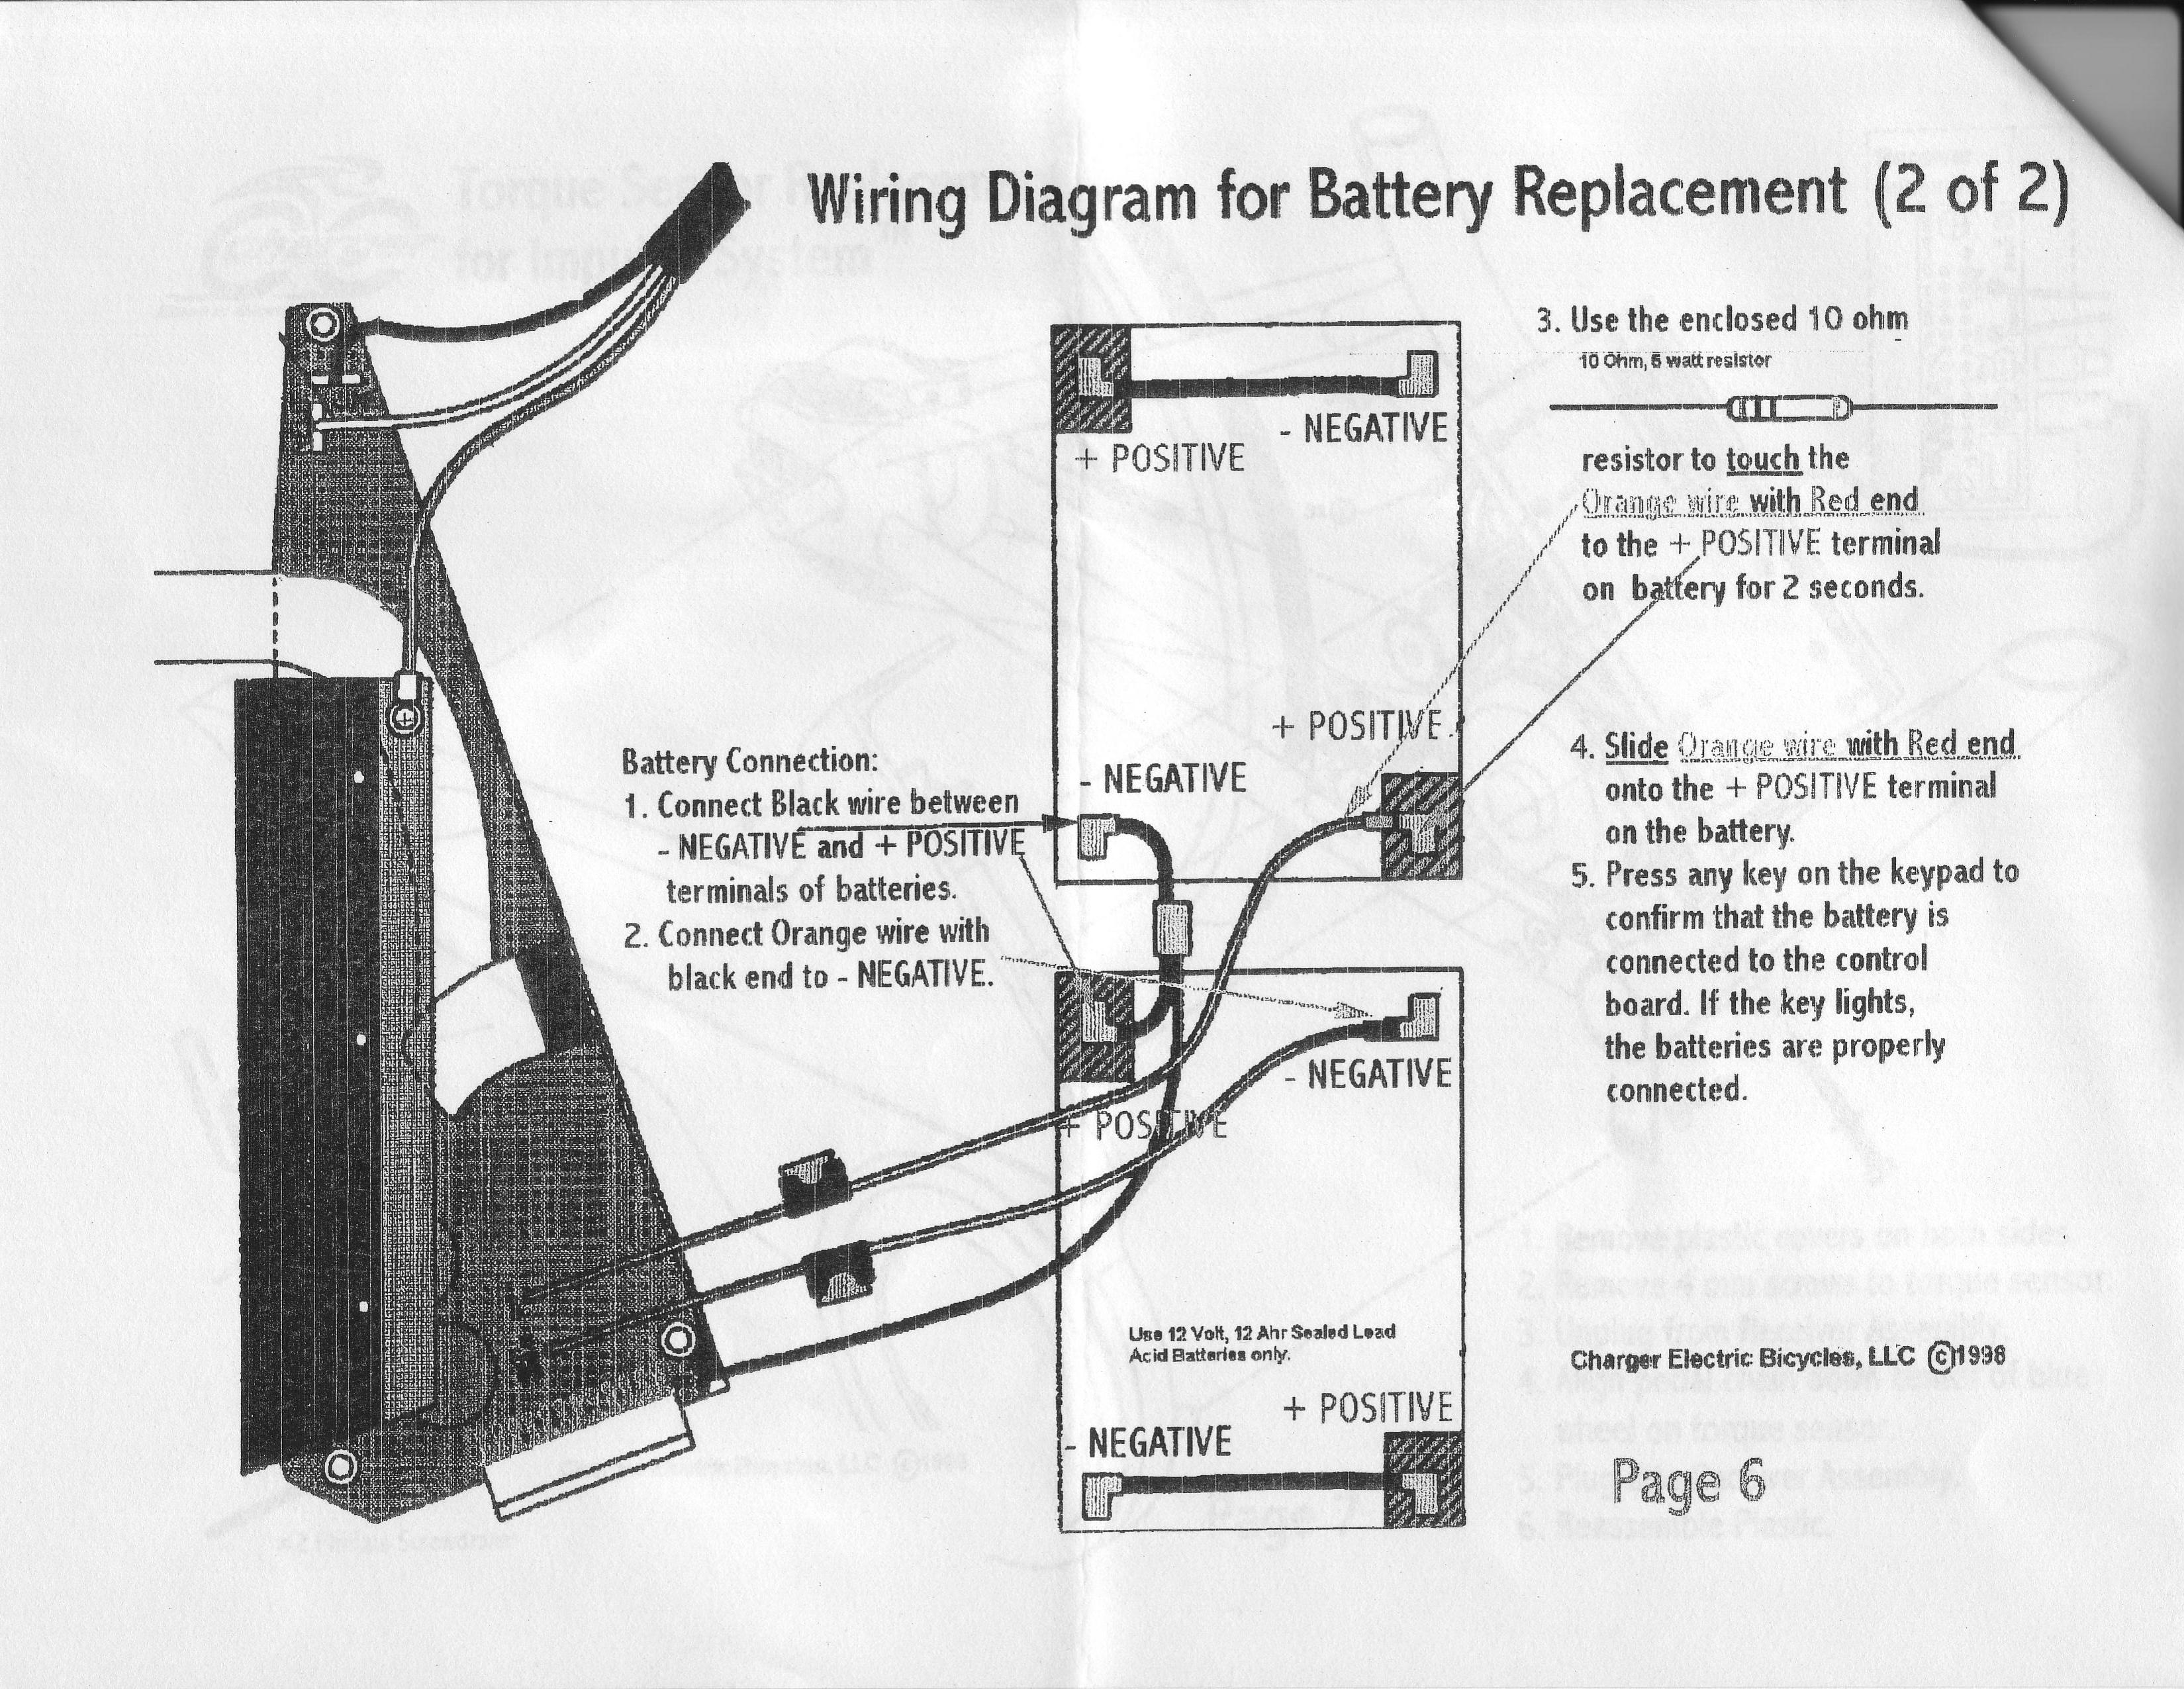 panterra freedom scooter wiring diagrams catalogue of schemas Enigma Wiring Diagram